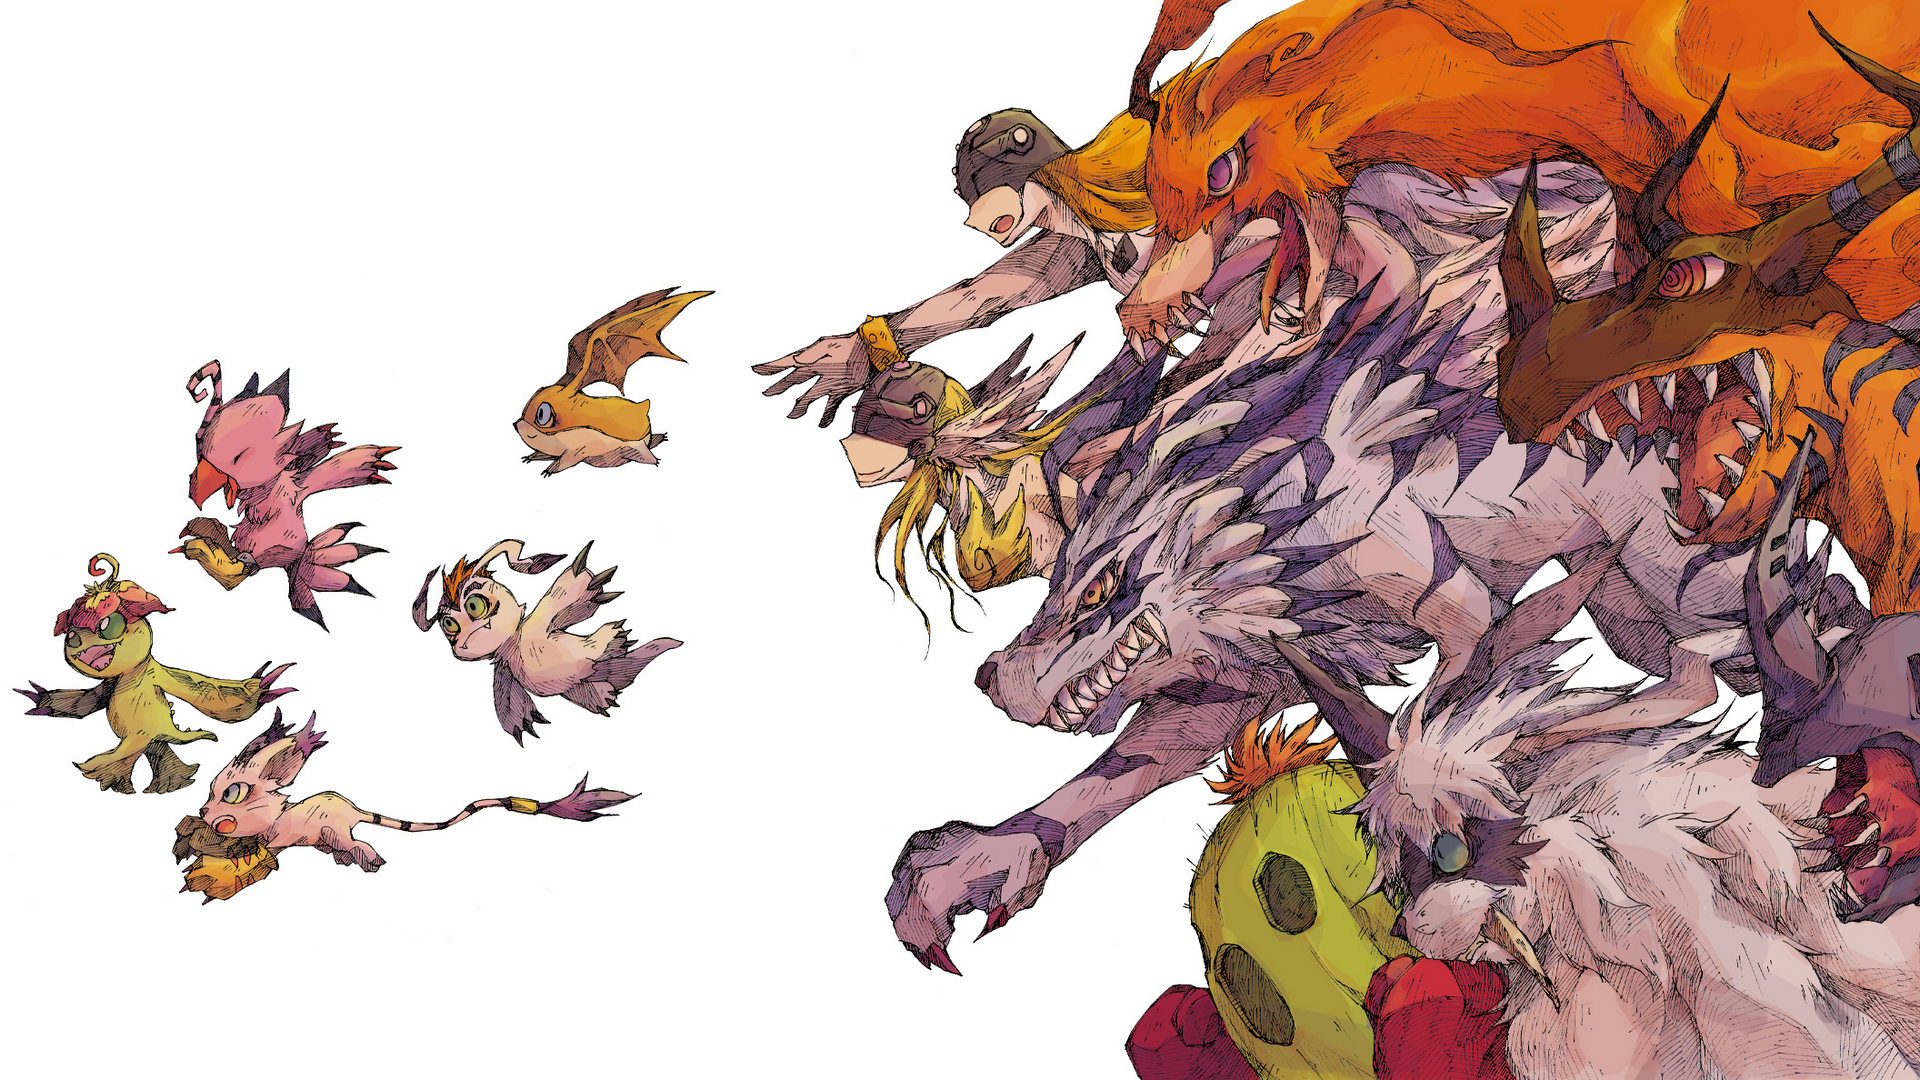 Digimon Desktop Wallpapers Page 3 of 3 wallpaperwiki